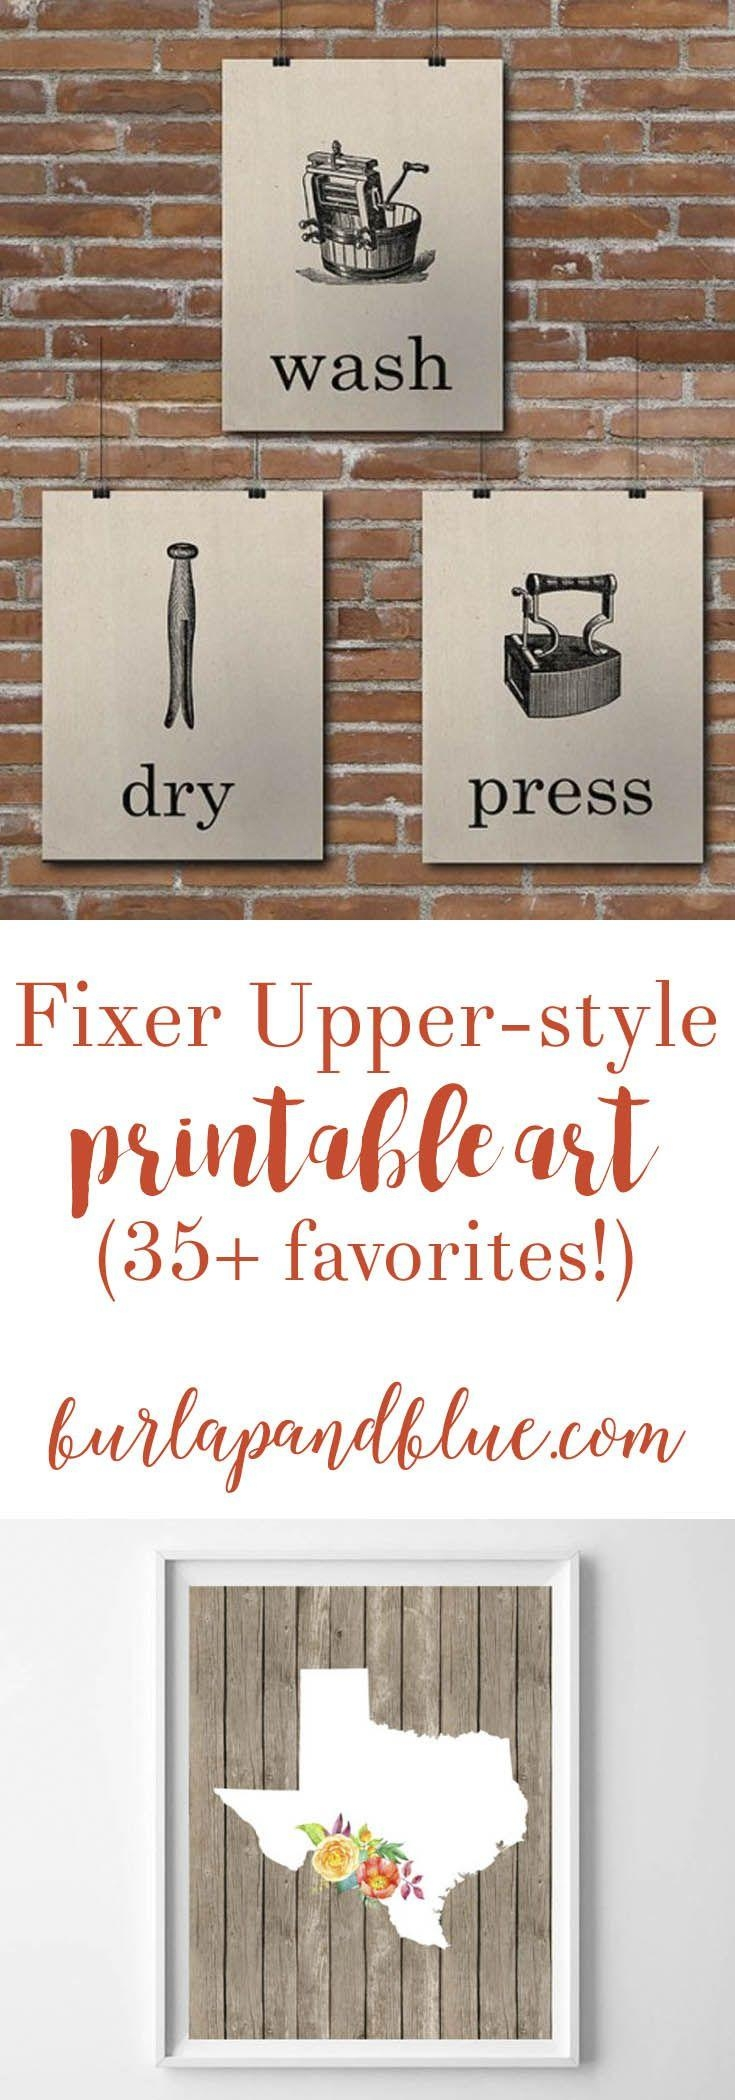 Best 25+ Laundry Room Wall Decor Ideas Only On Pinterest | Laundry Throughout Laundry Room Wall Art (Image 4 of 20)